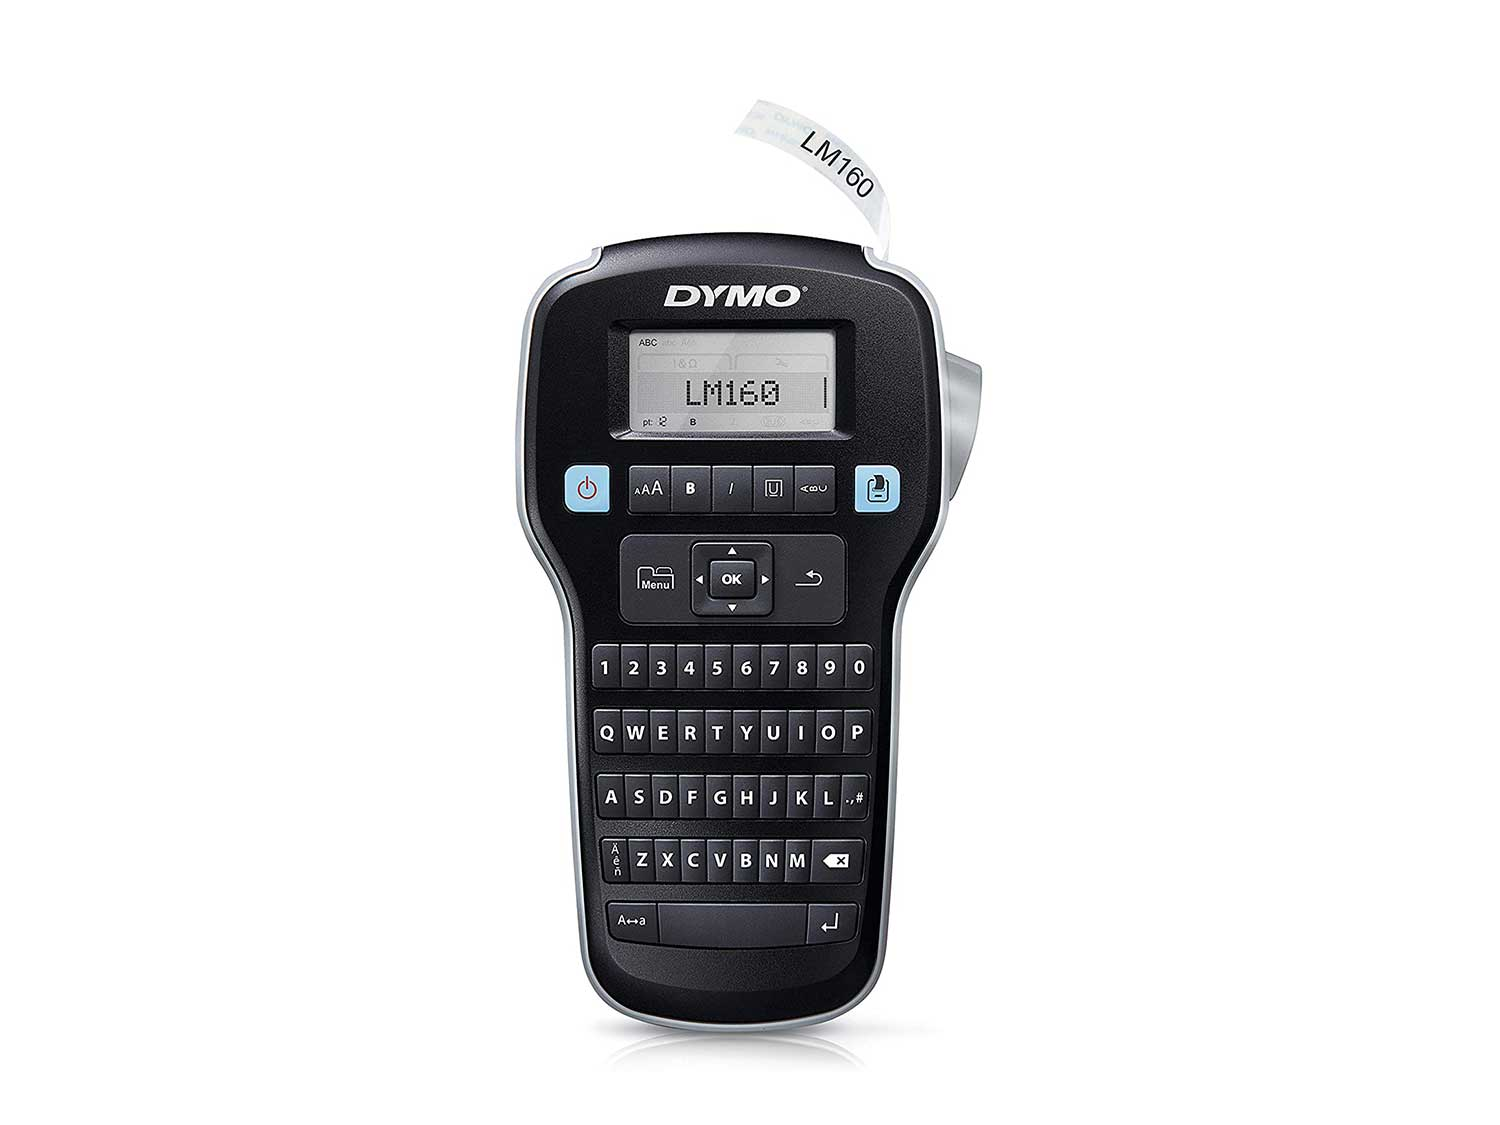 DYMO Label Maker LabelManager 160 Portable Label Maker, Easy-to-Use, One-Touch Smart Keys, QWERTY Keyboard, Large Display, For Home & Office Organization